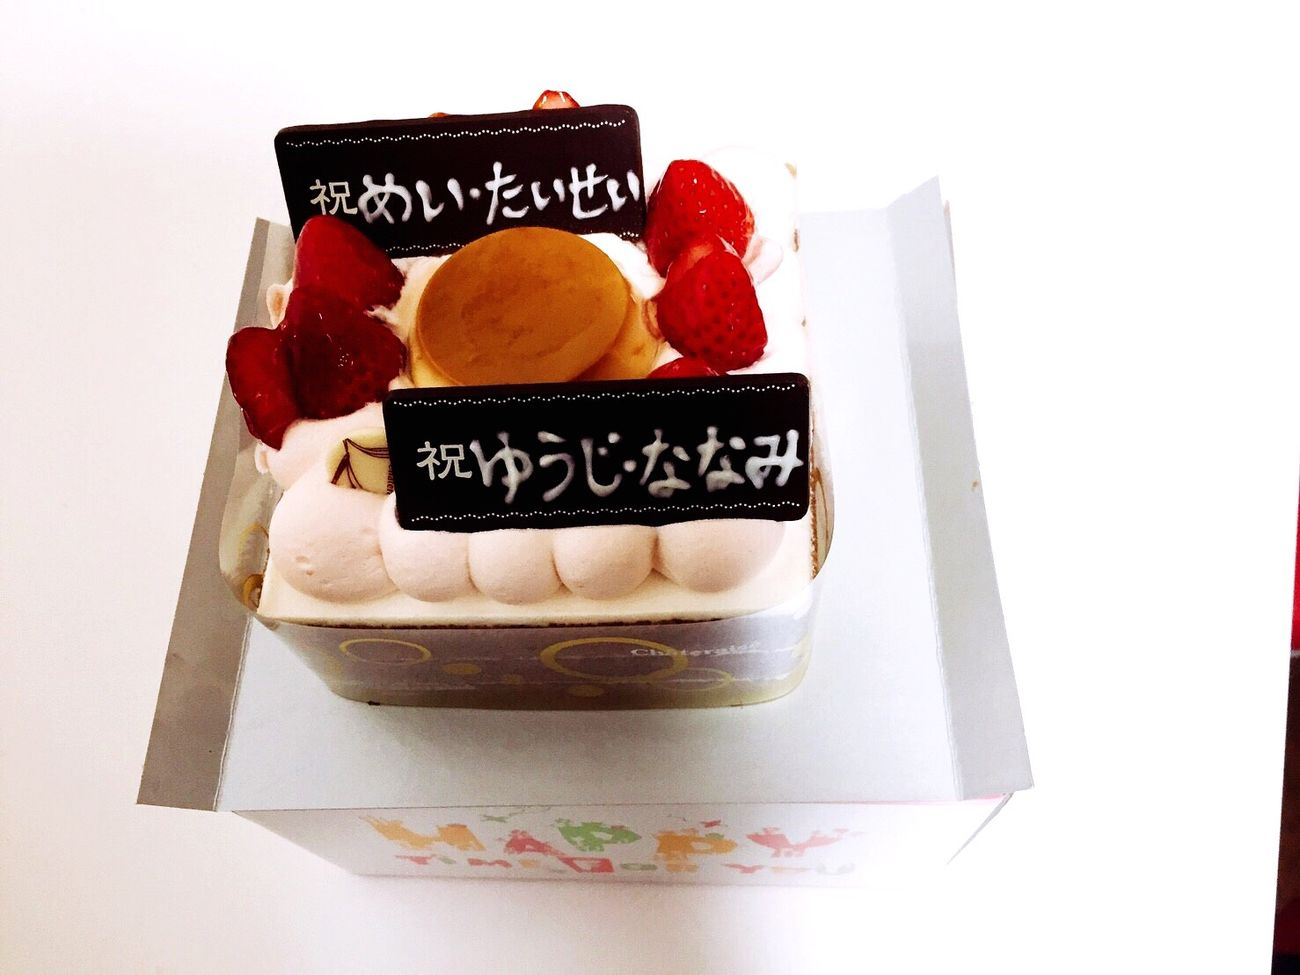 by 颯 プリン 結婚祝いのプレゼント 成人祝い Cake Brother 2017.12